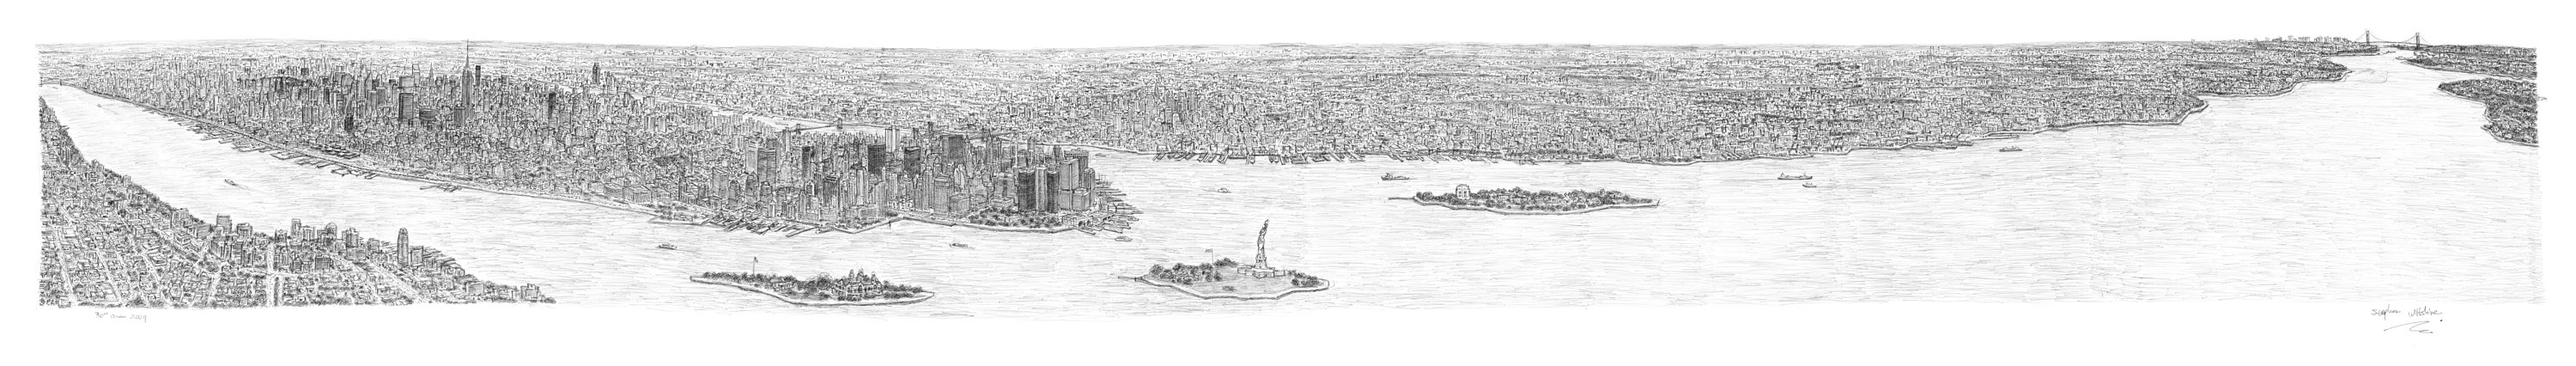 New York Panorama by Stephen Wiltshire